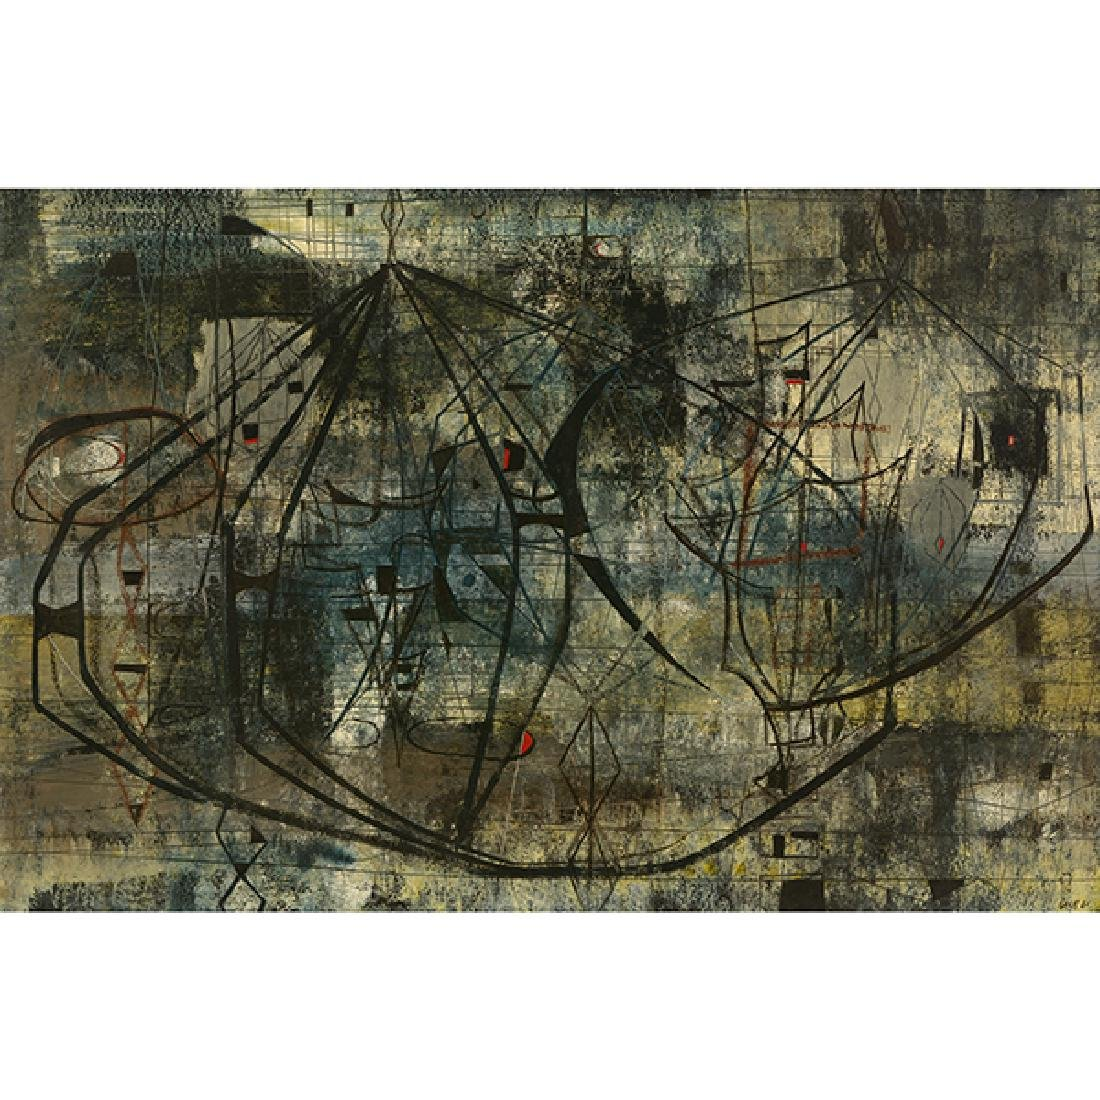 "Kenneth Nack ""Untitled Abstract in Black"" mixed media"